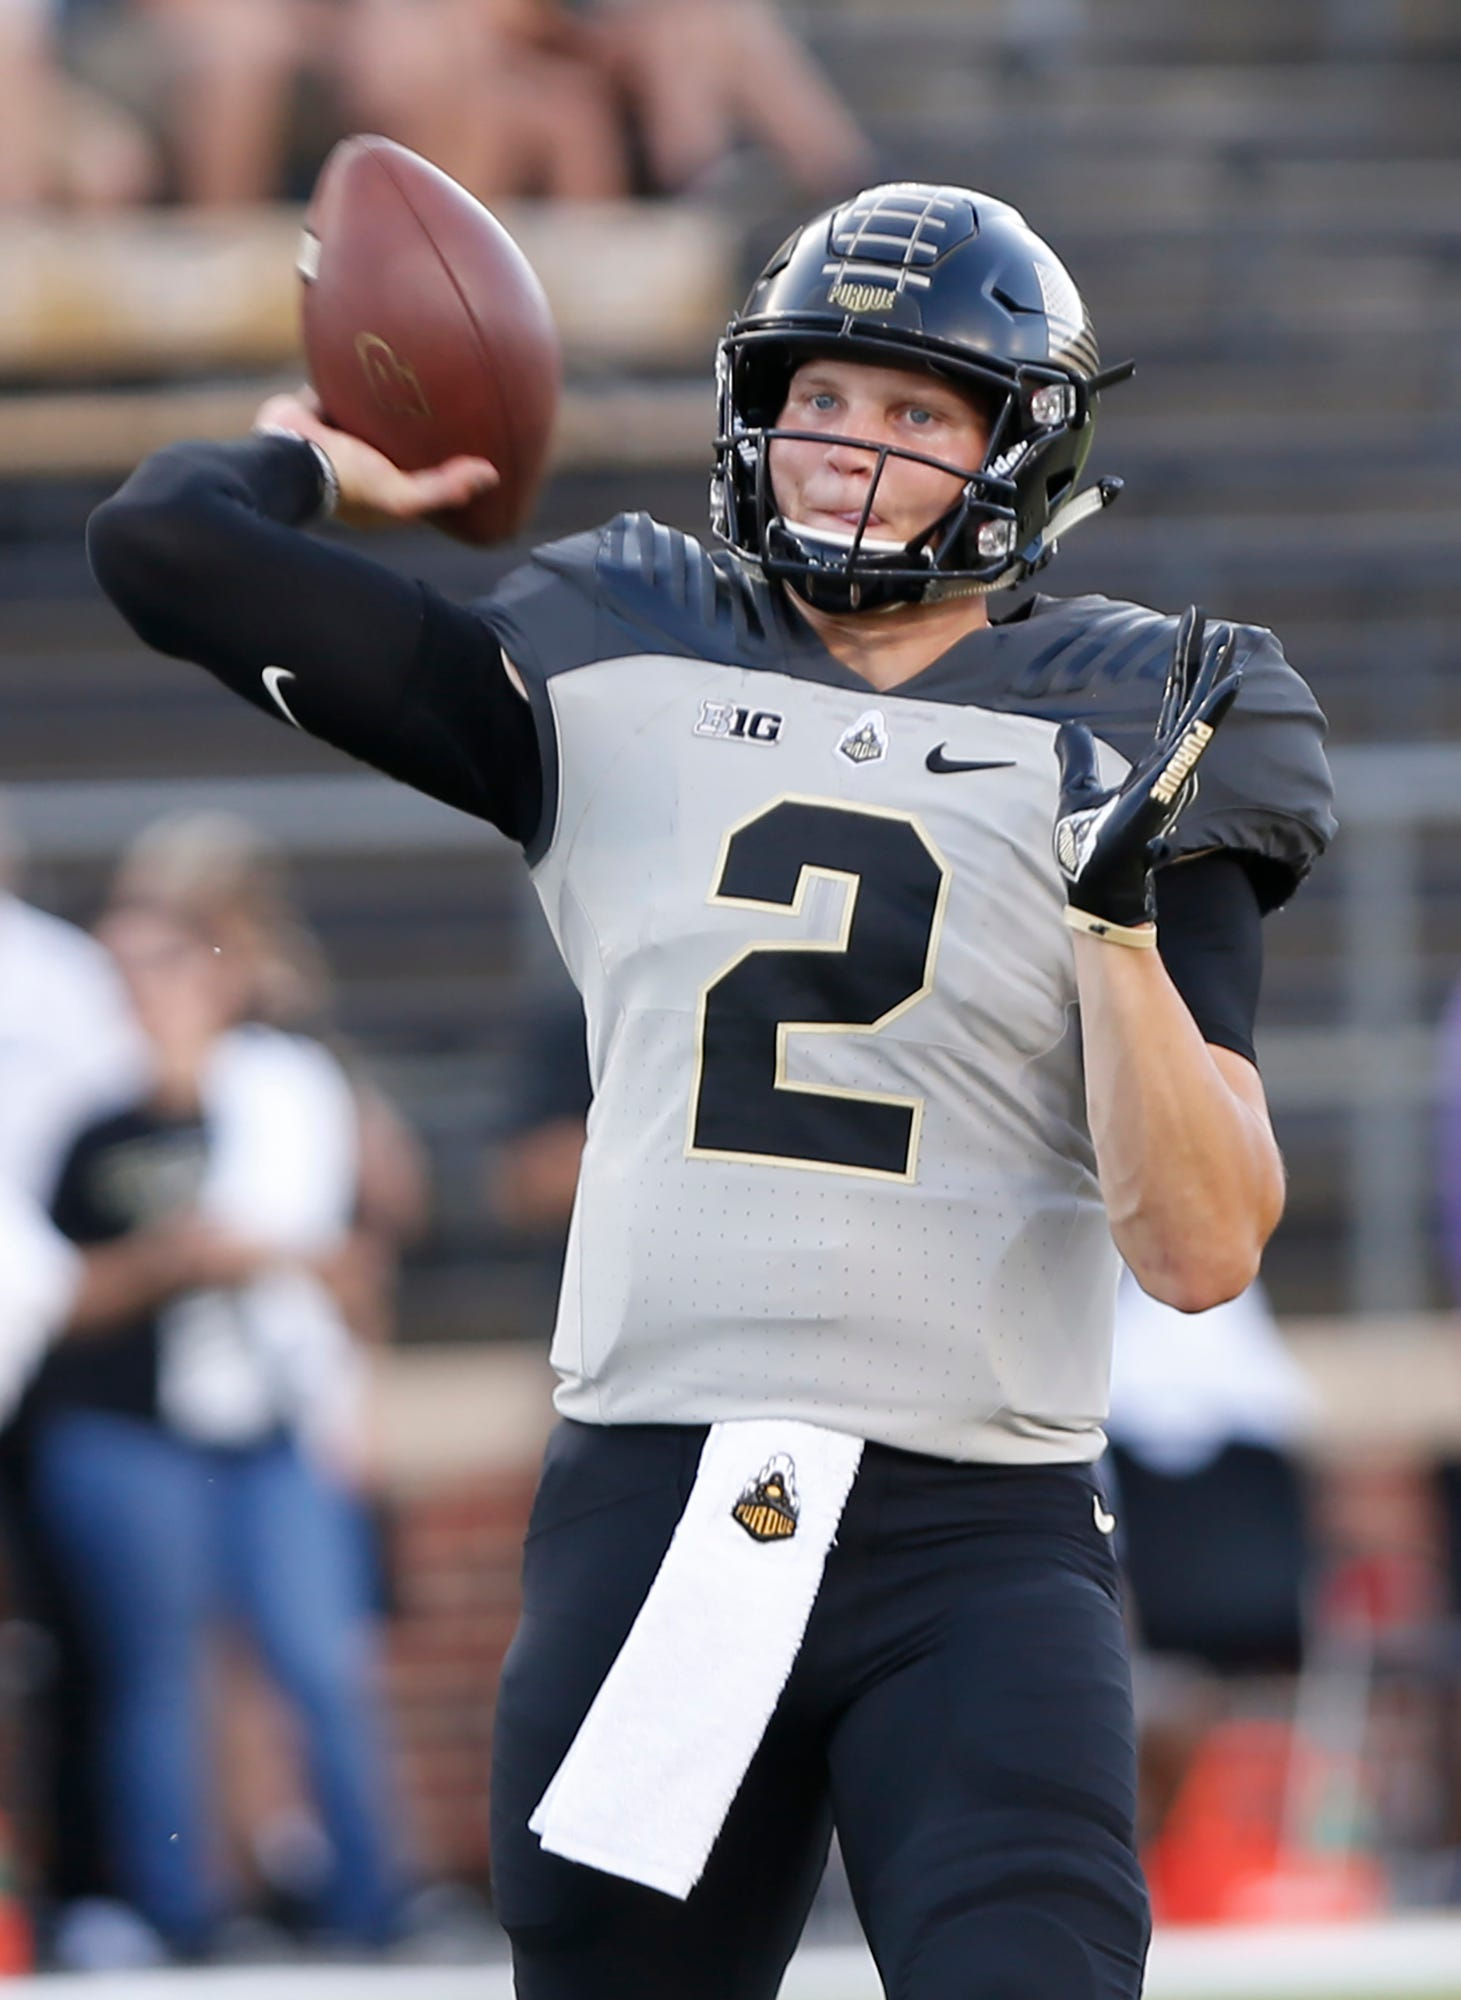 Quarterback Elijah Sindelar warms up before Purdue host Missouri Saturday, September 15, 2018, in West Lafayette. Purdue lost 40-37 on a Missouri field goal as time expired.